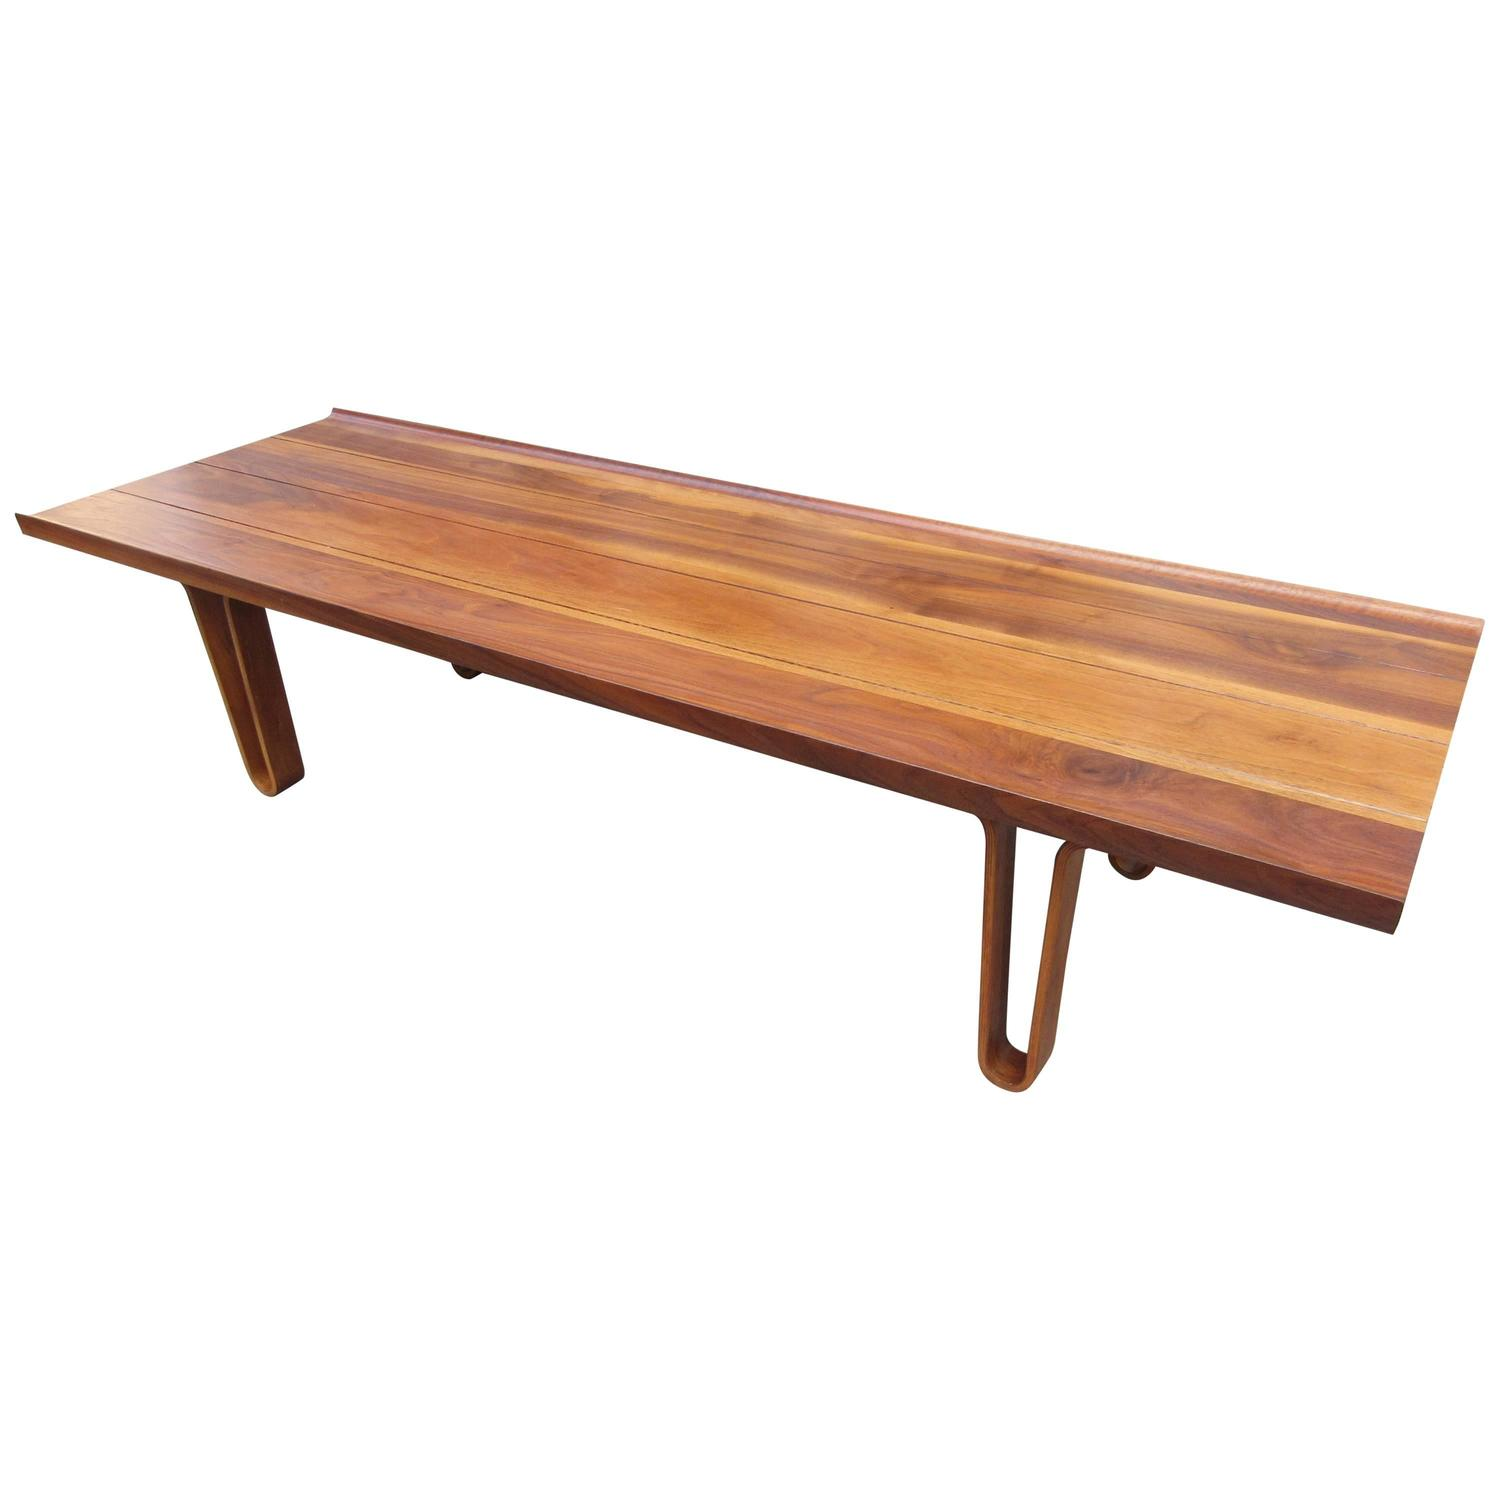 Solid Walnut Coffee Table Or Bench At 1stdibs